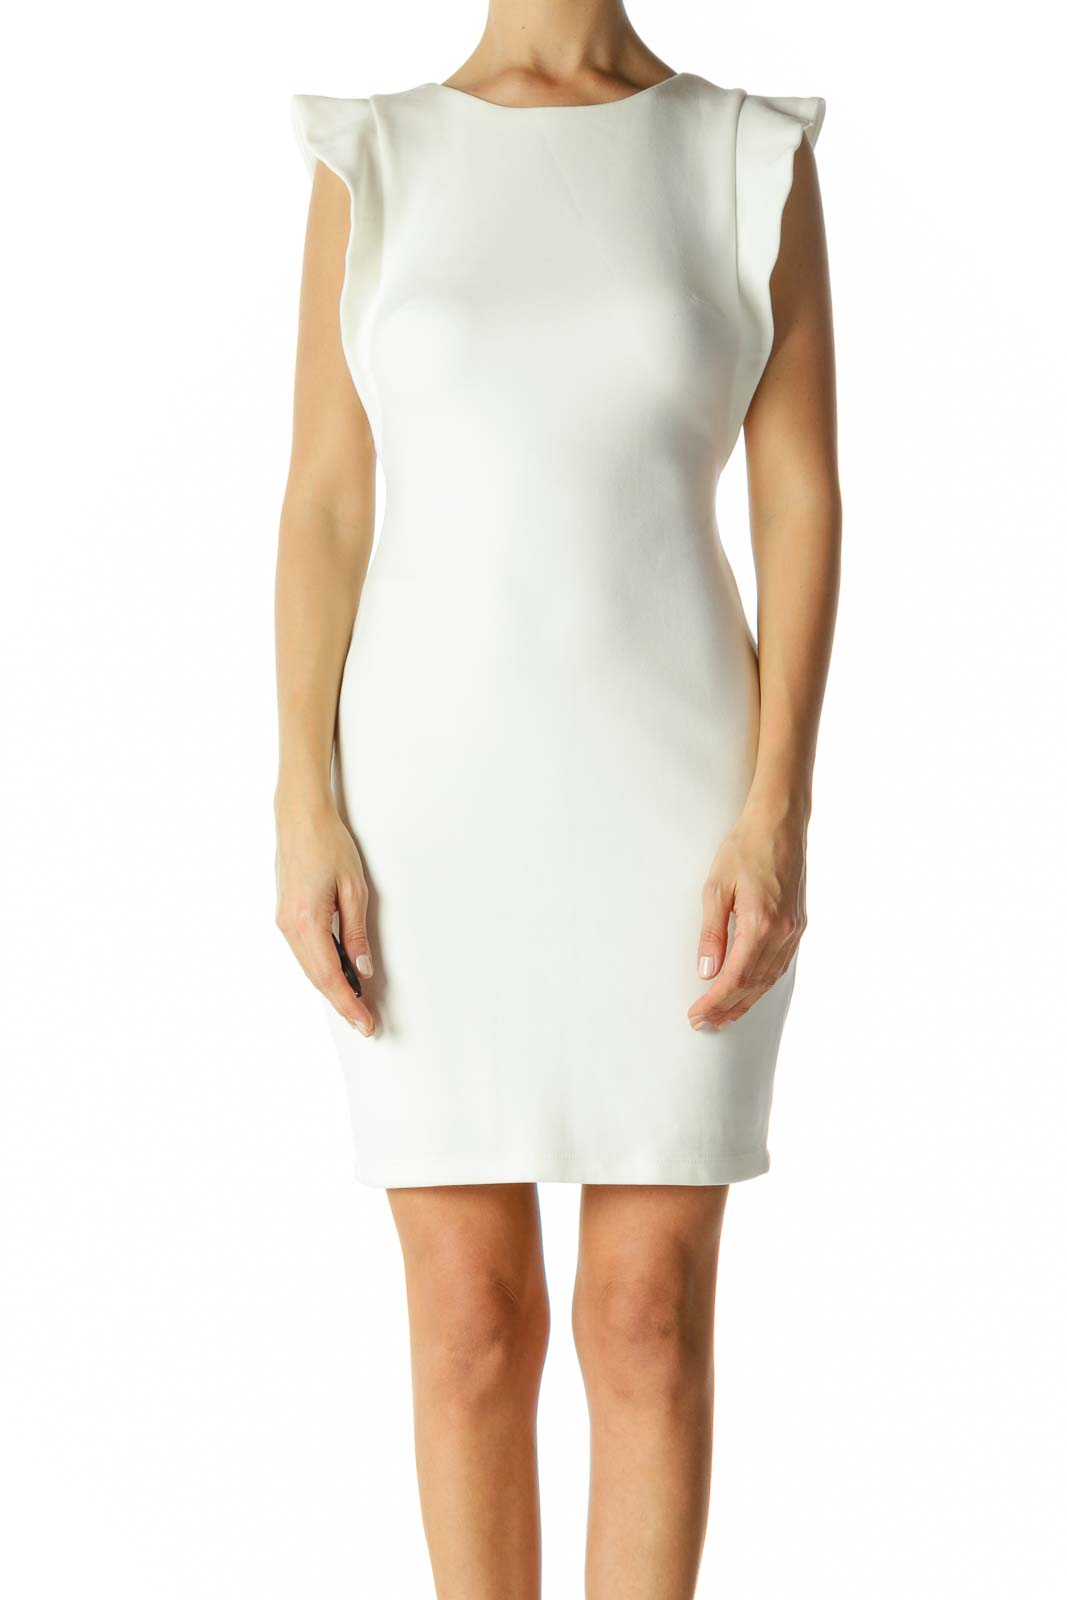 White Round Neck Flared Cap Sleeves Stretch Work Dress Front